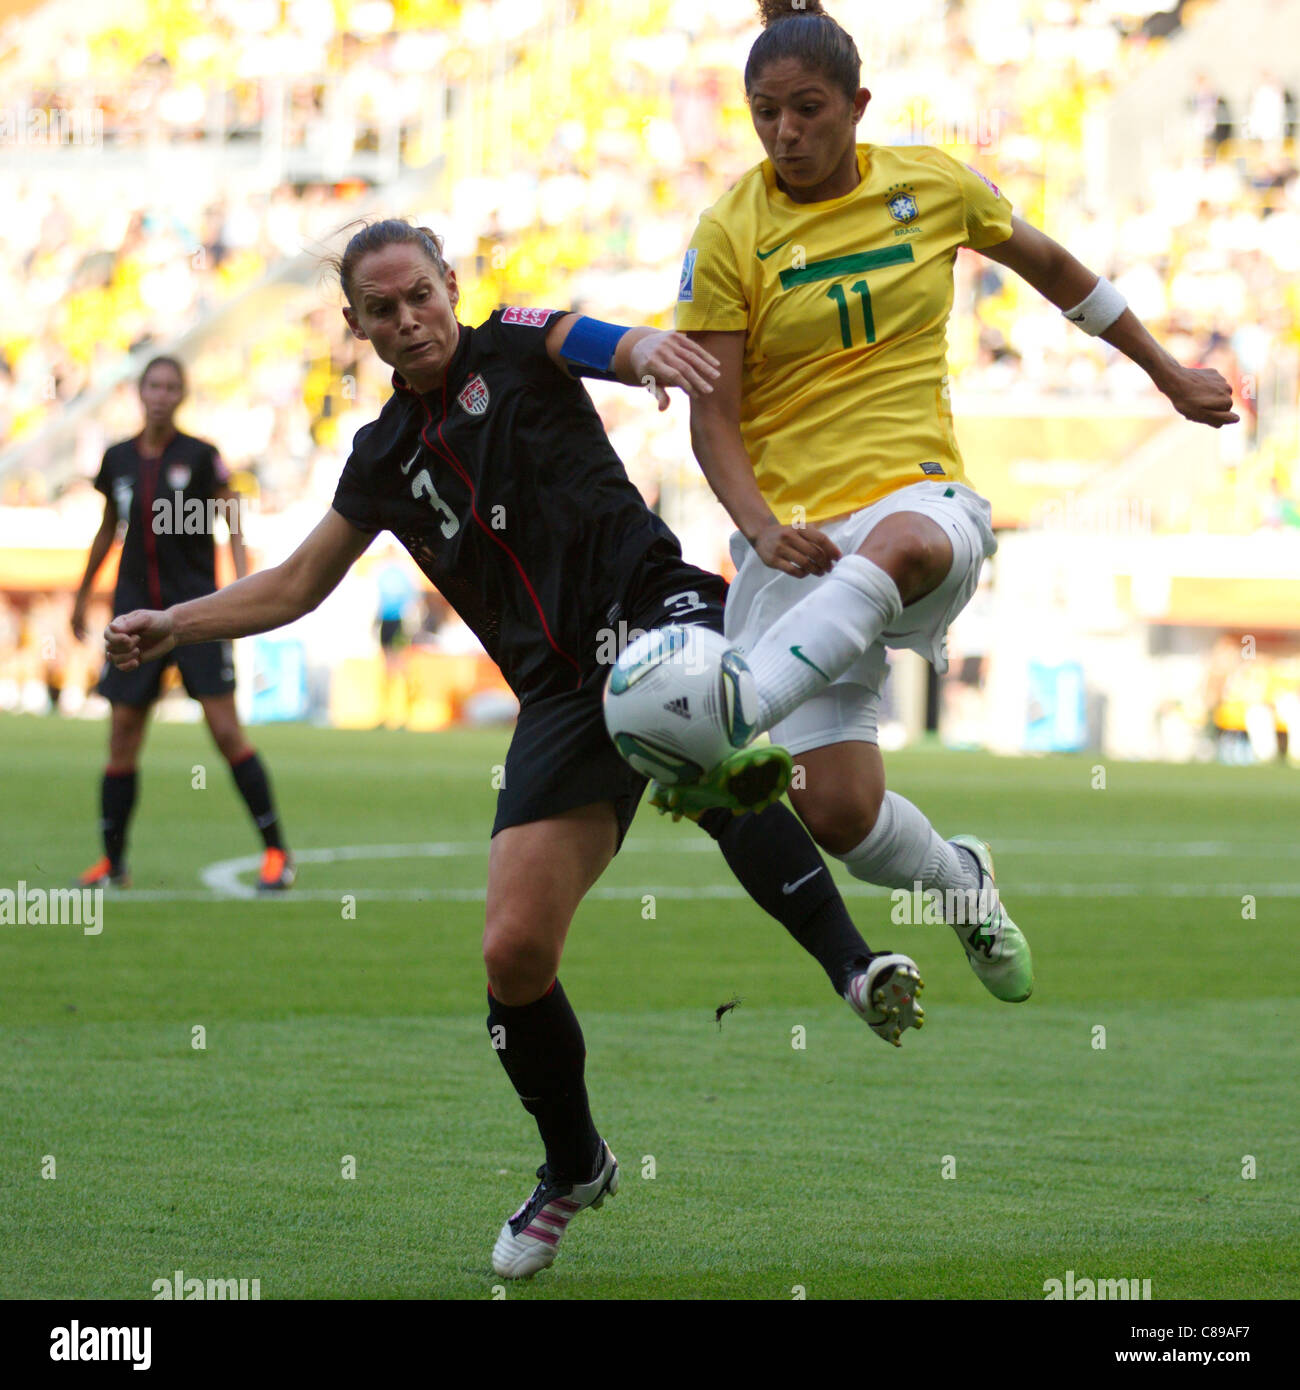 Cristiane of Brazil (R) kicks the ball ahead of Christie Rampone of the USA (L) during a 2011 Women's World - Stock Image